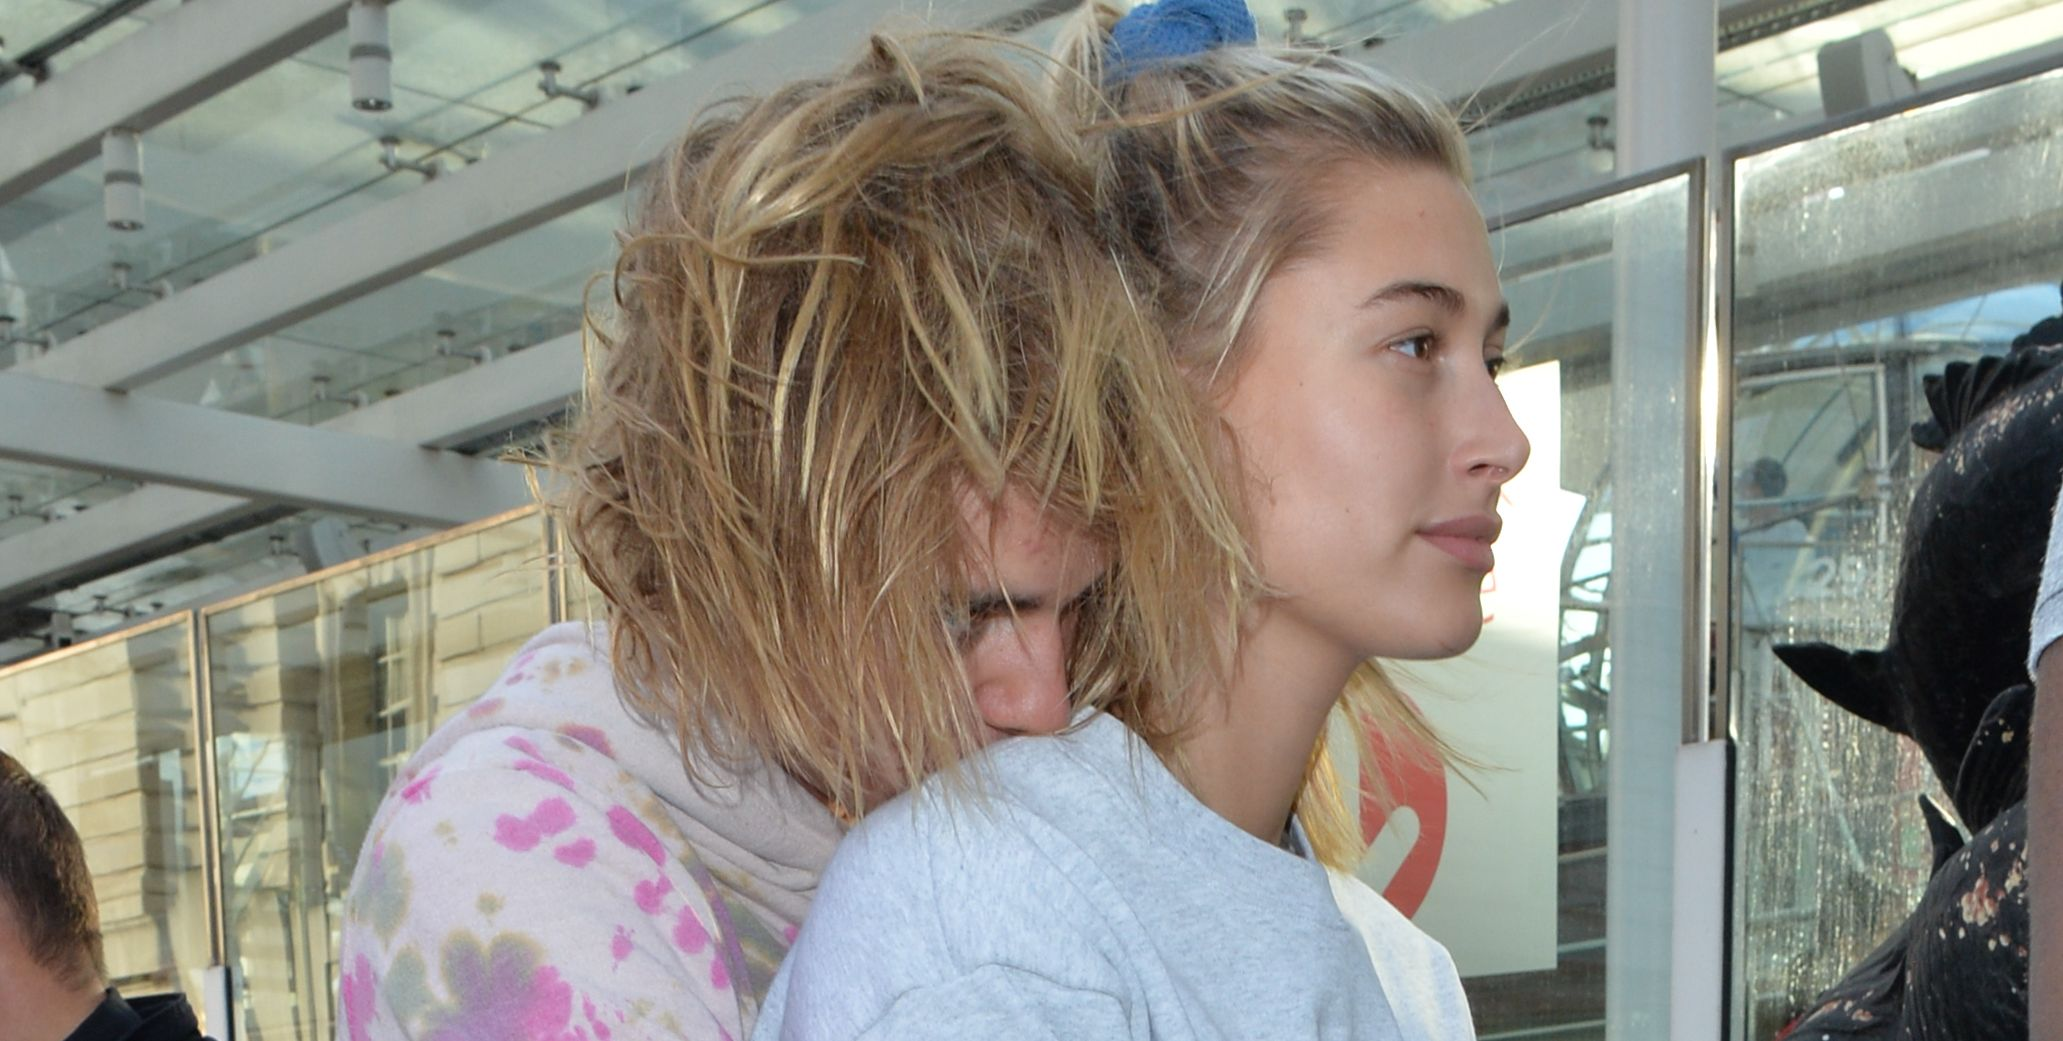 Watch Justin Bieber and Hailey Baldwin Struggle to Row Their Boat Out of a Corner on a Date